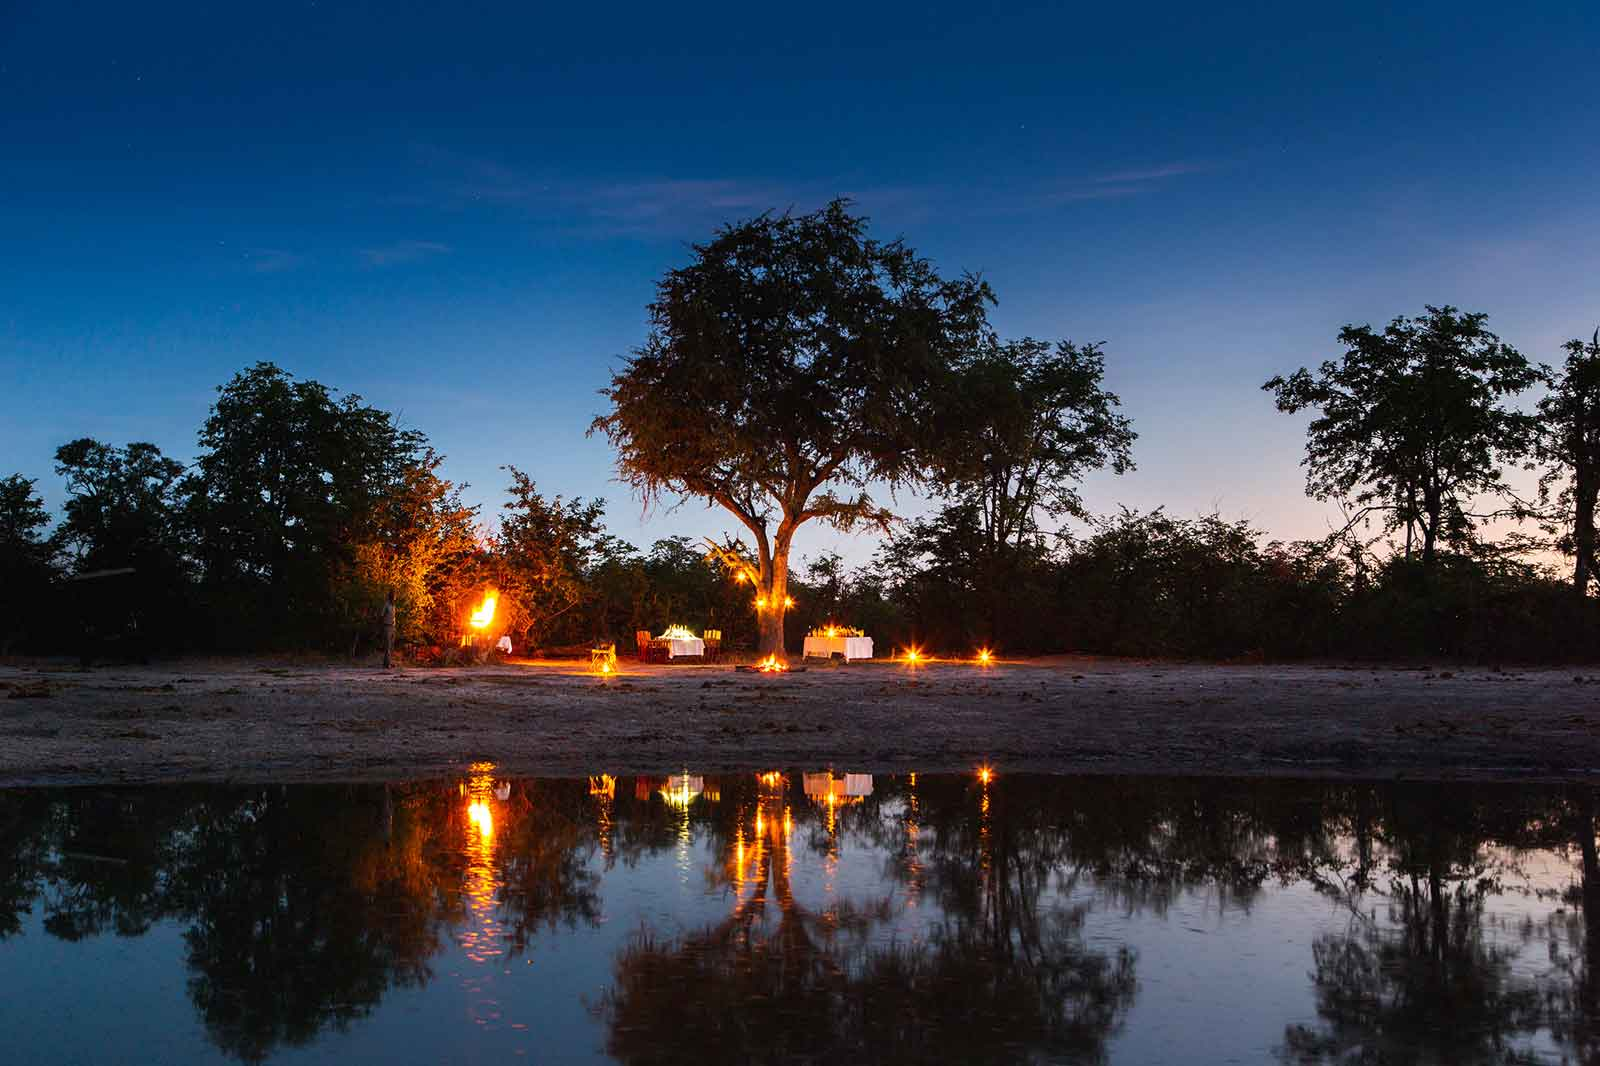 Botswana Bush Dinner Under the Stars at Motswiri Camp